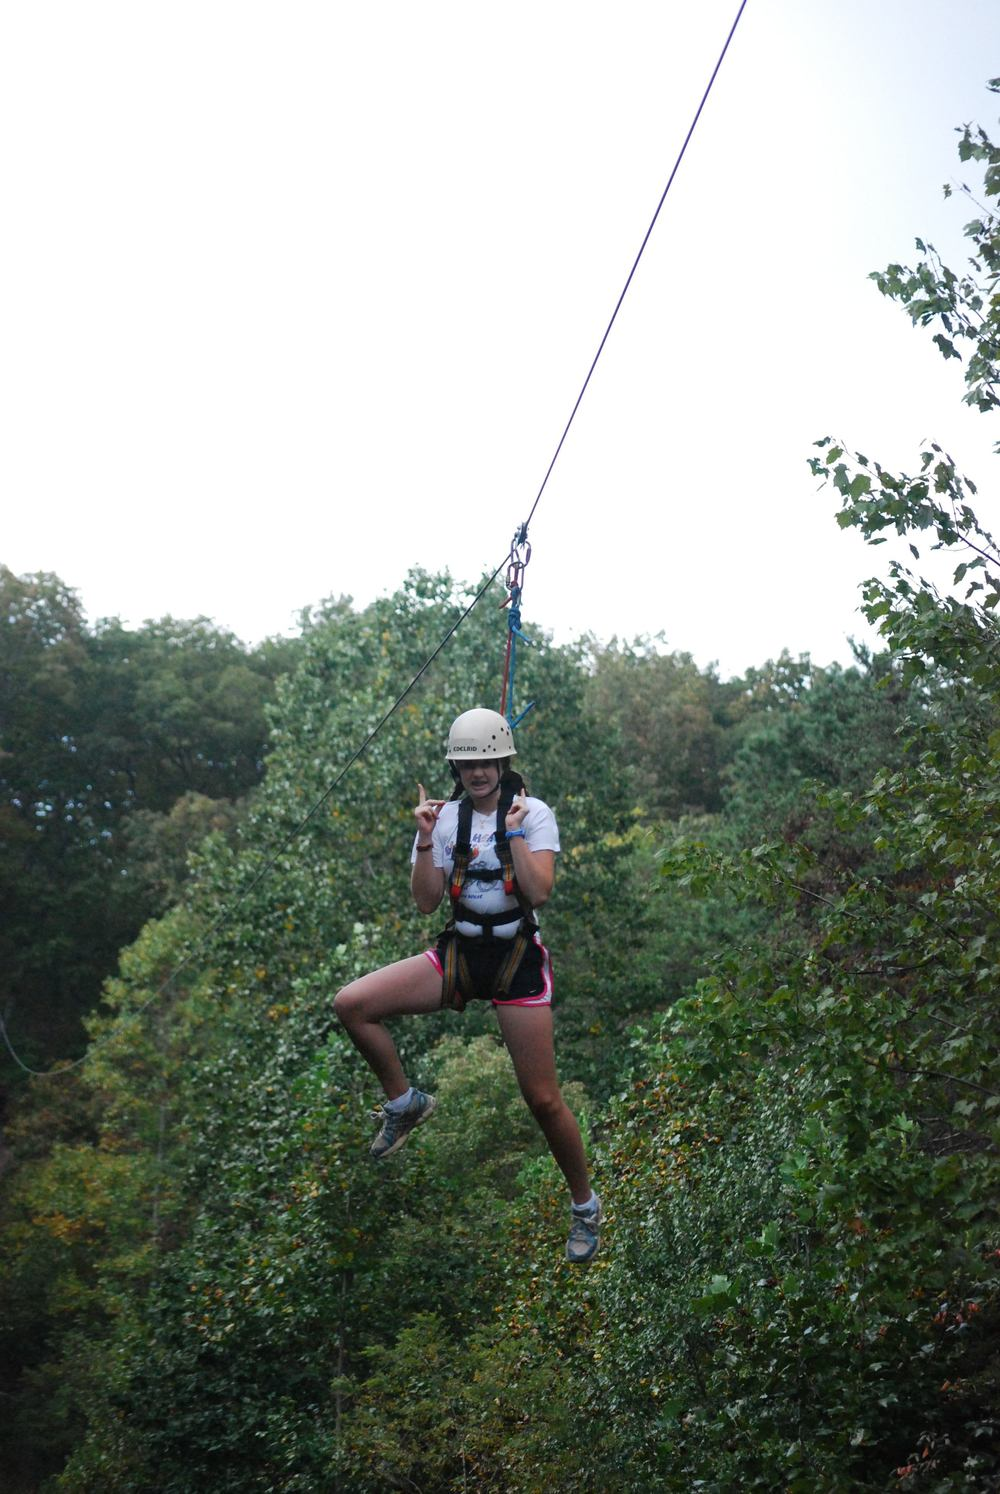 girl on zipline.jpg